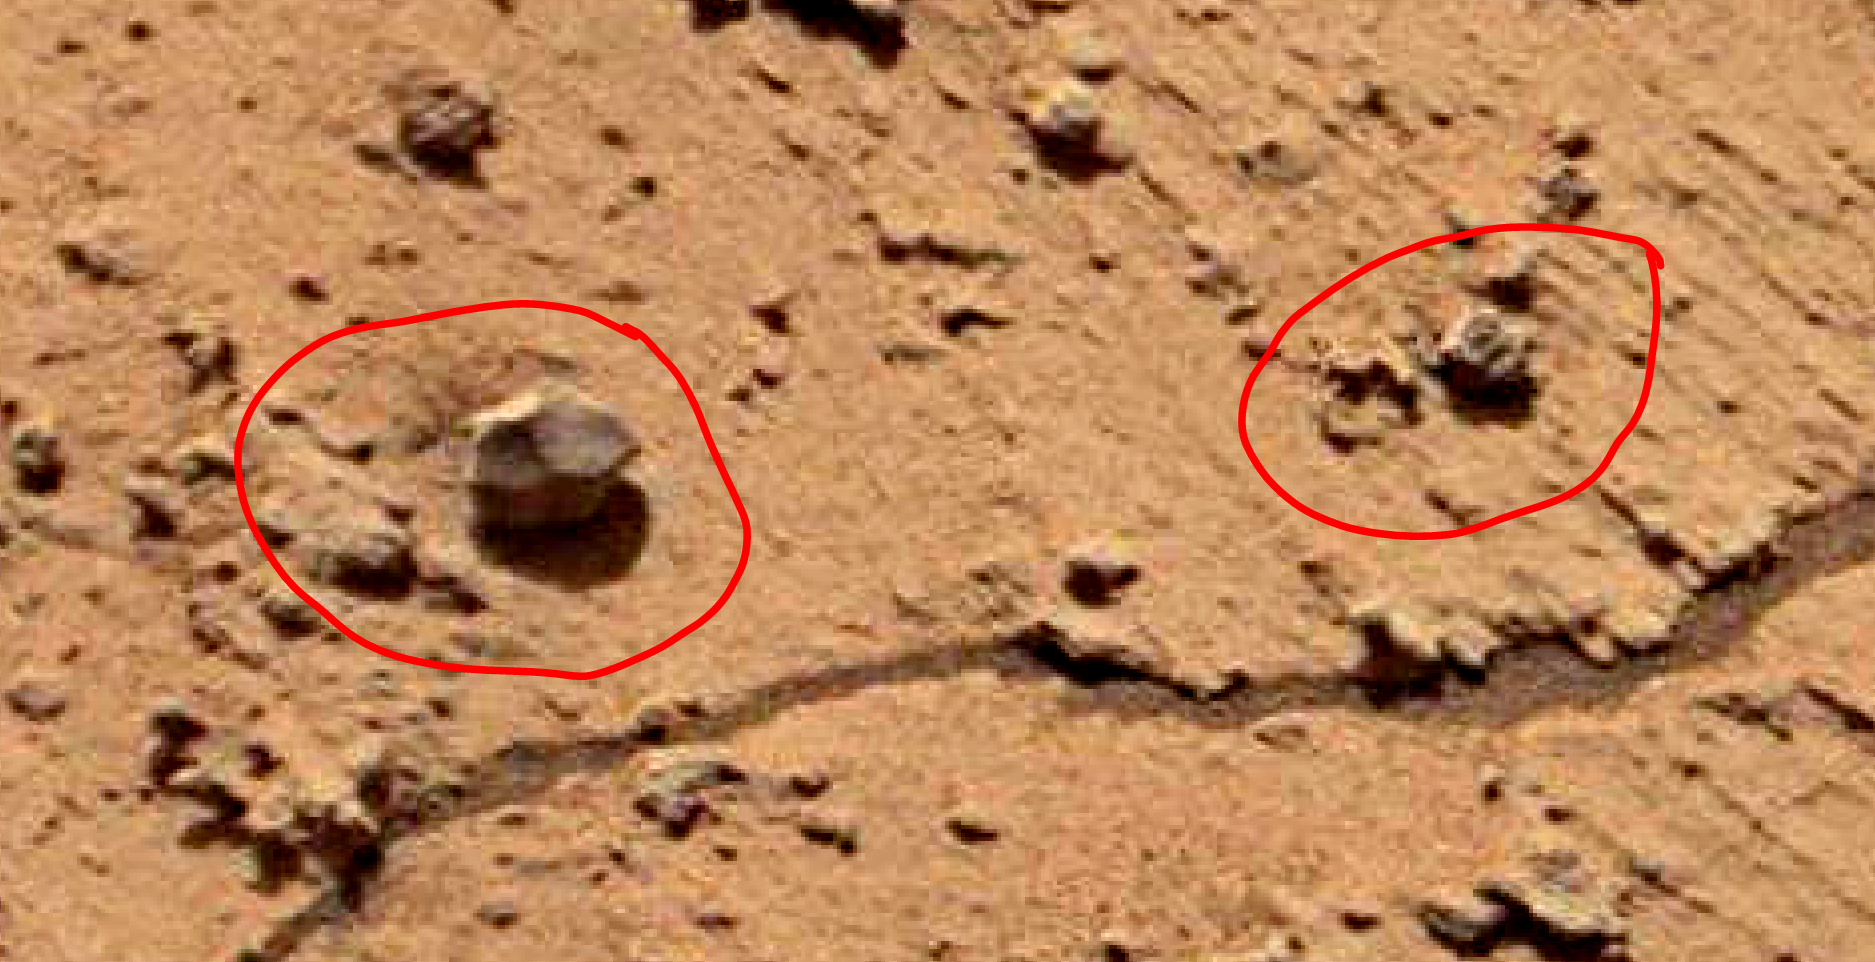 mars-sol-1456-anomaly-artifacts-3a-was-life-on-mars